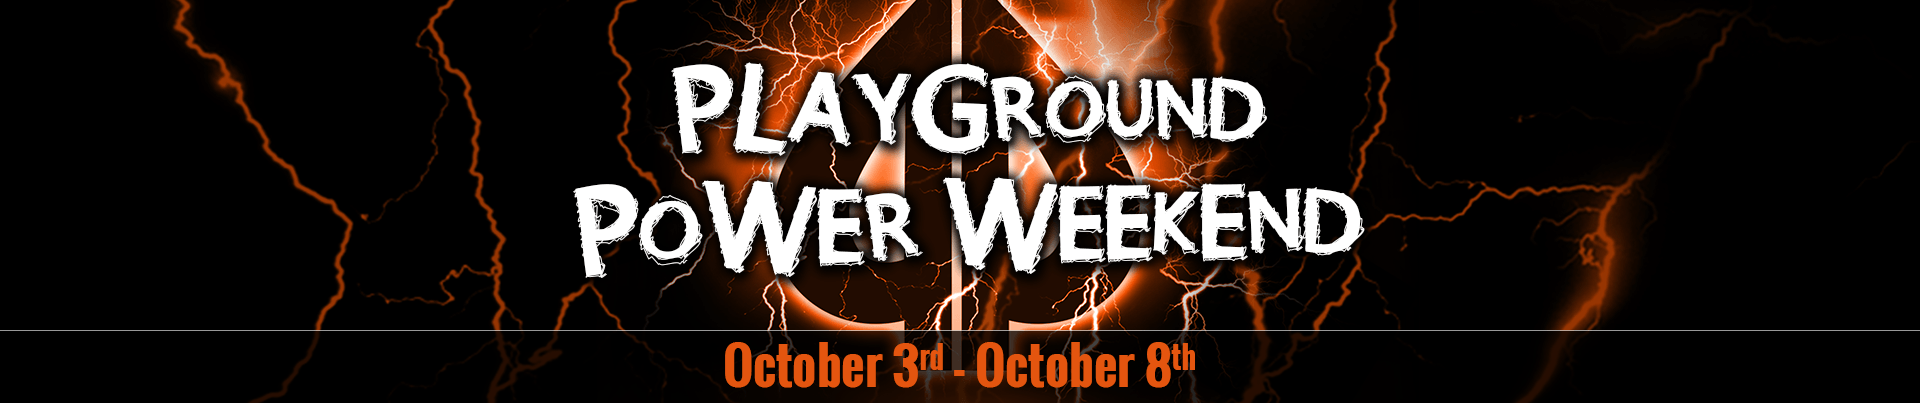 Playground Power Weekend October 2018